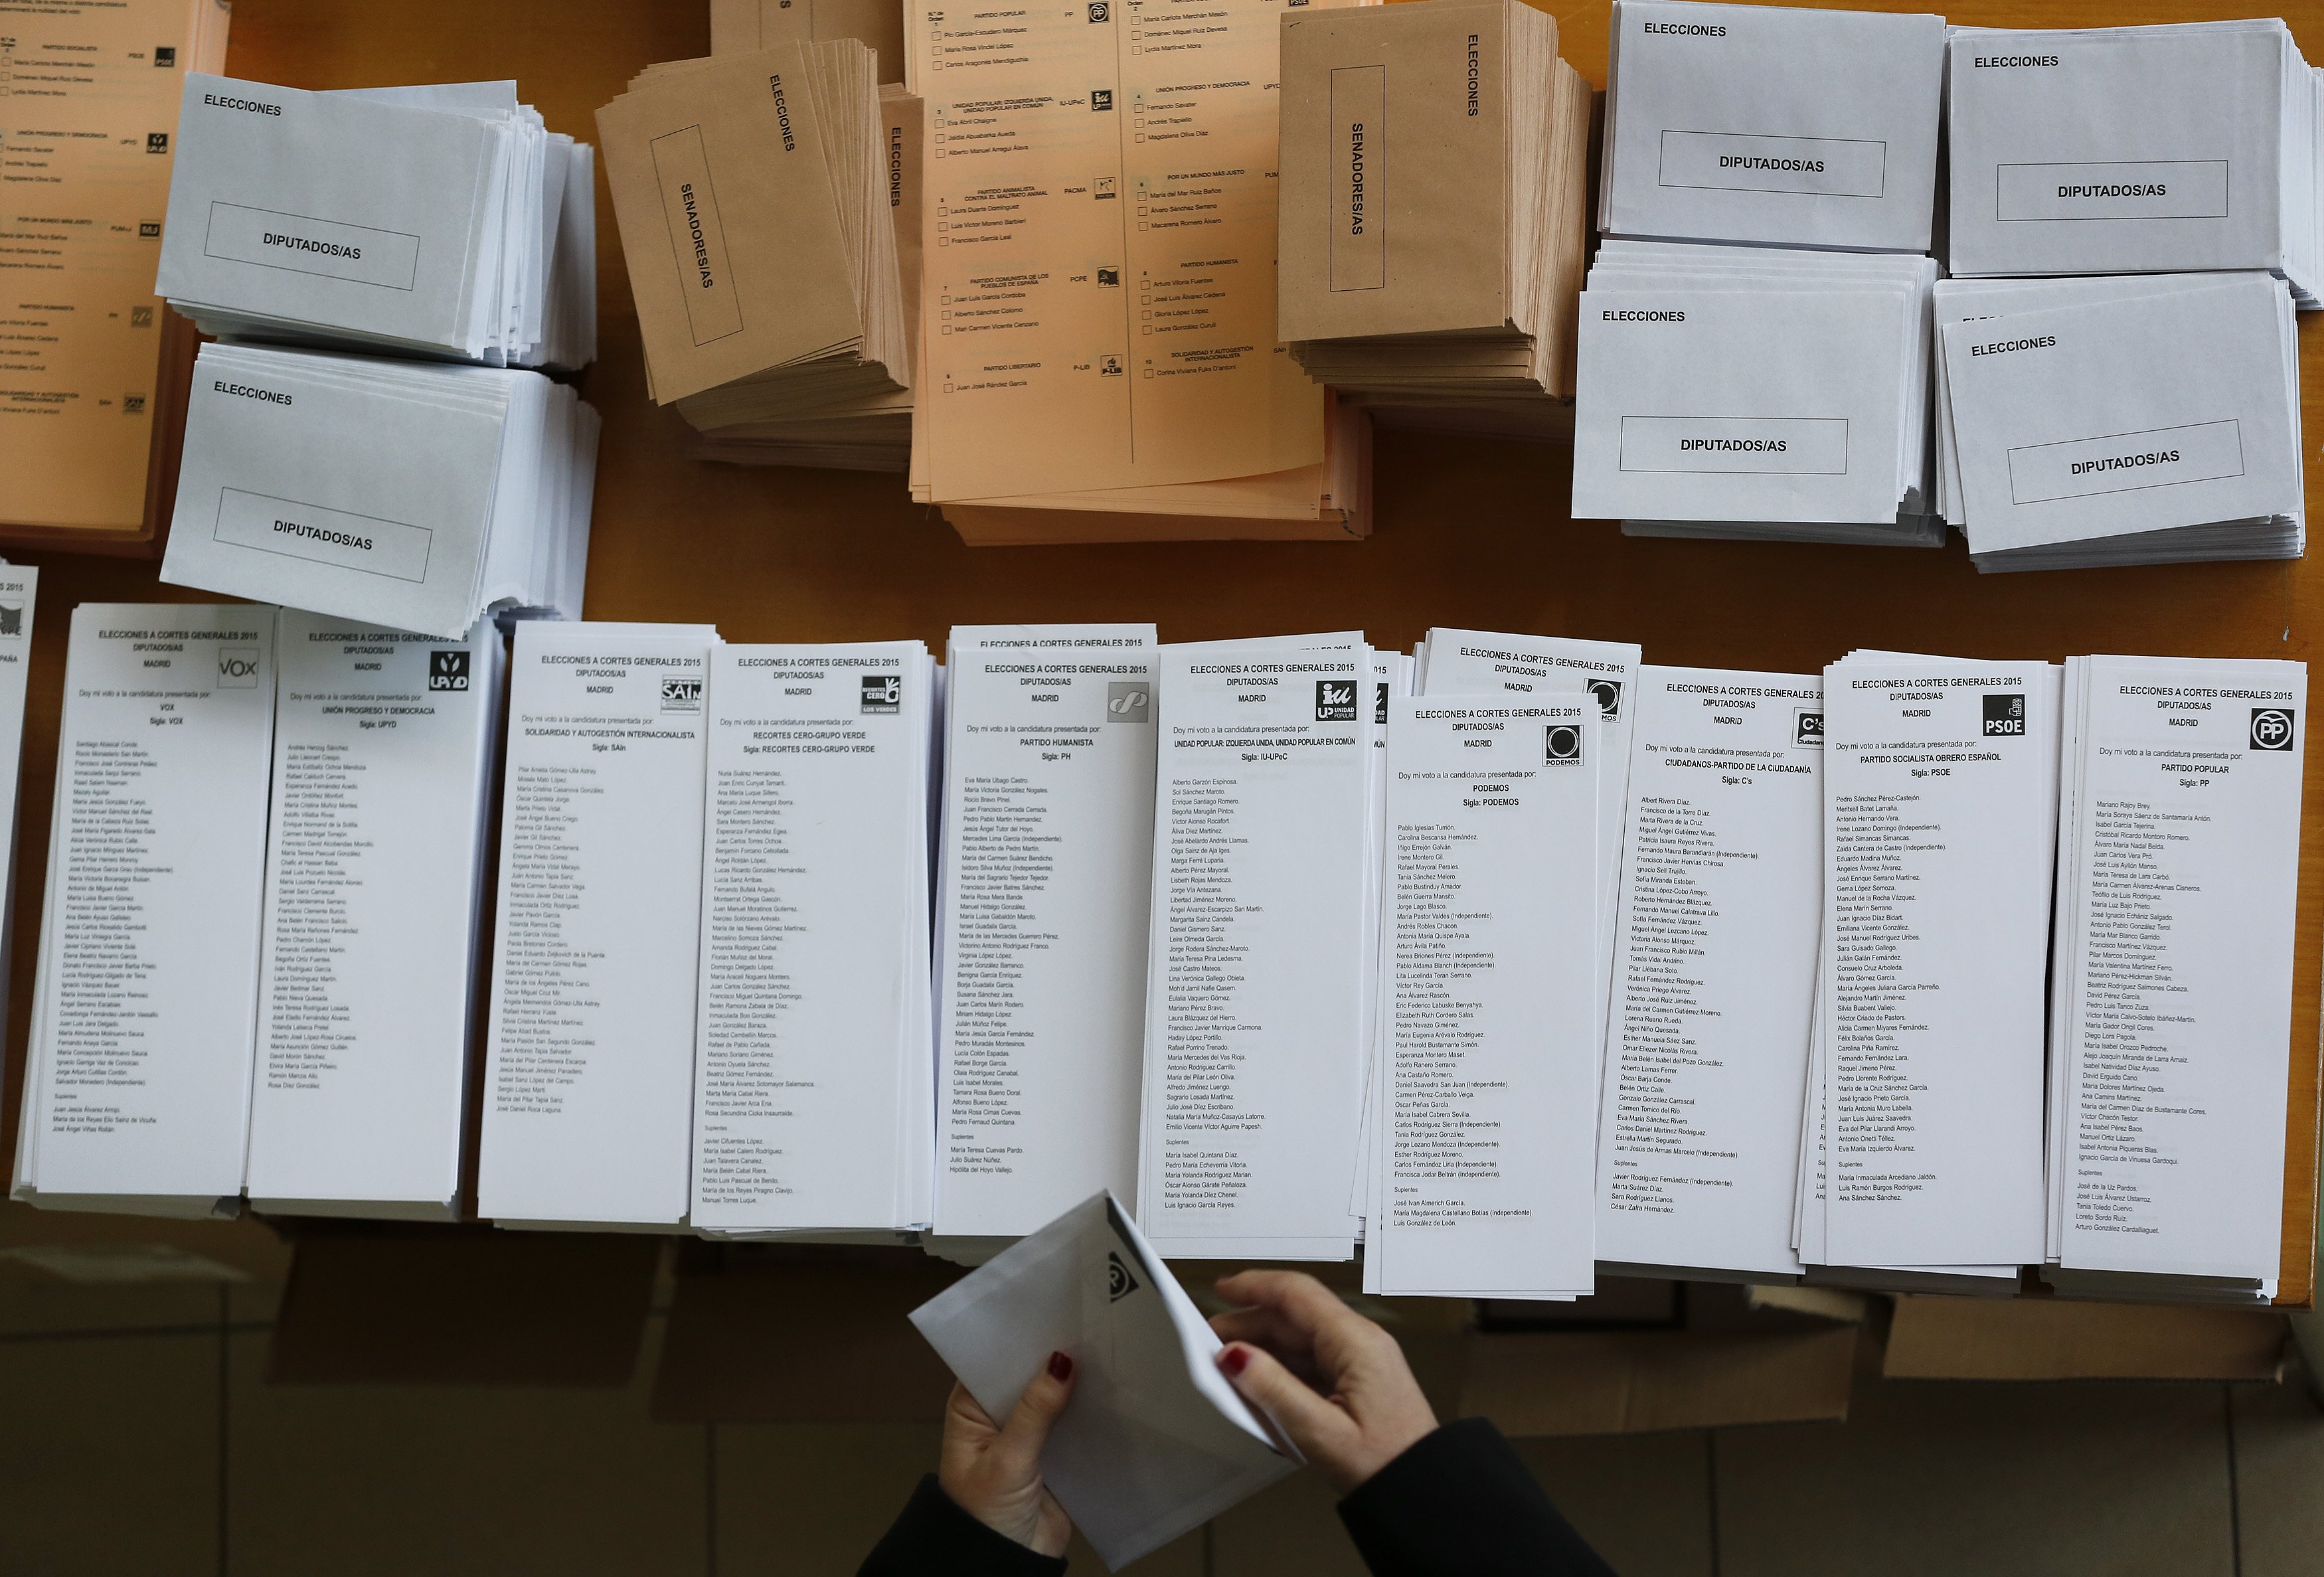 A voter prepares a ballot before voting in Spain's general election in Madrid, Spain, December 20, 2015.  REUTERS/Marcelo Del Pozo  - RTX1ZFRO